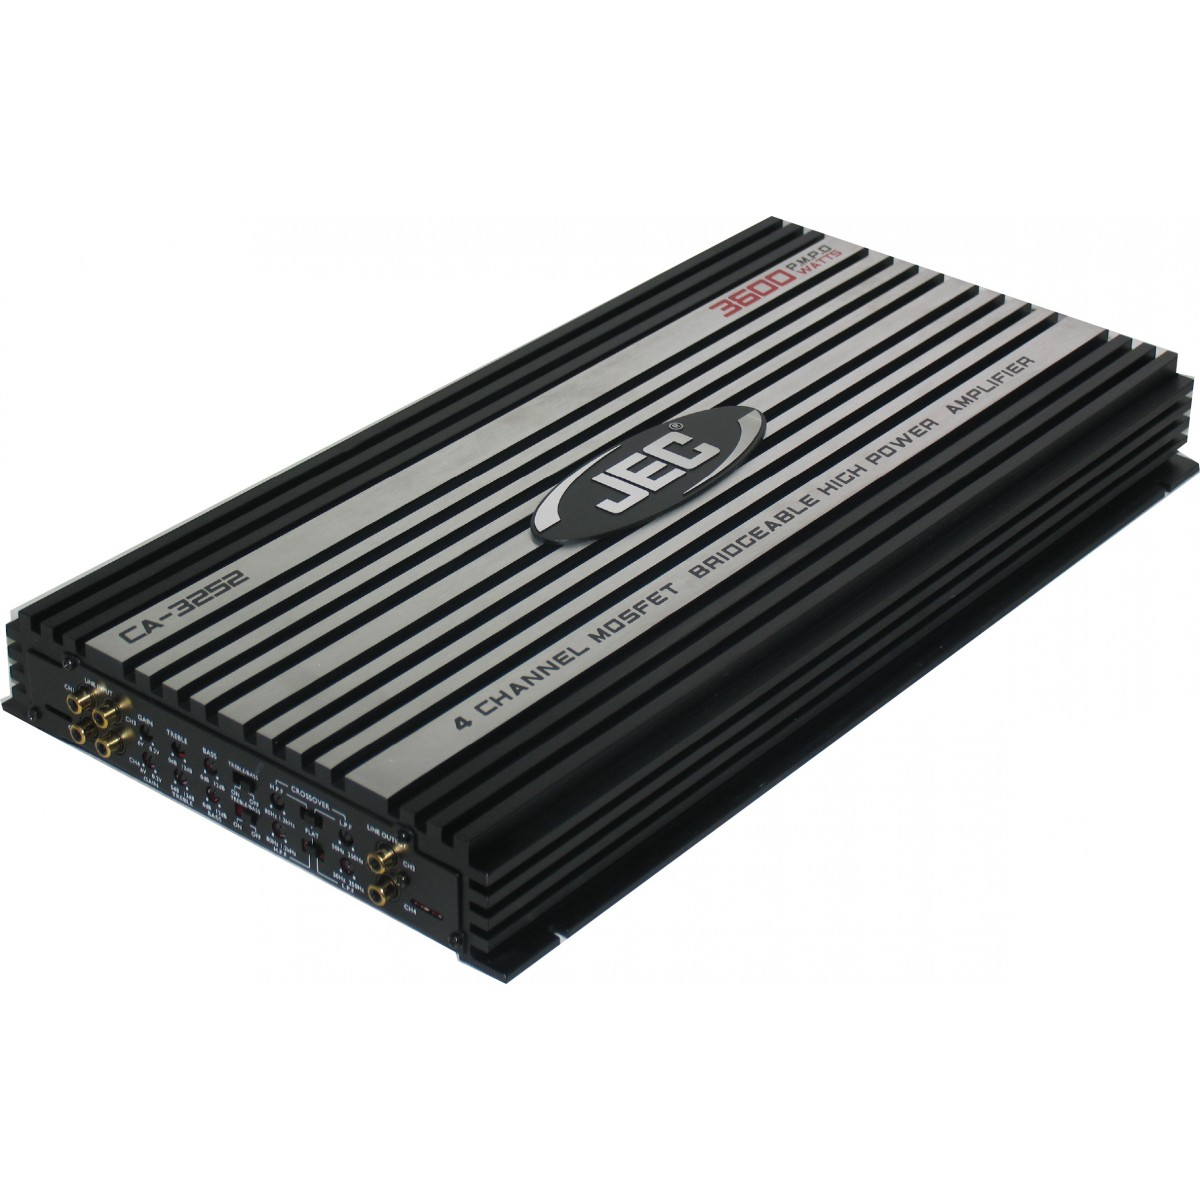 Mosfet High Power 4 Channel Car Amplifier Ca 3252 Products More Views